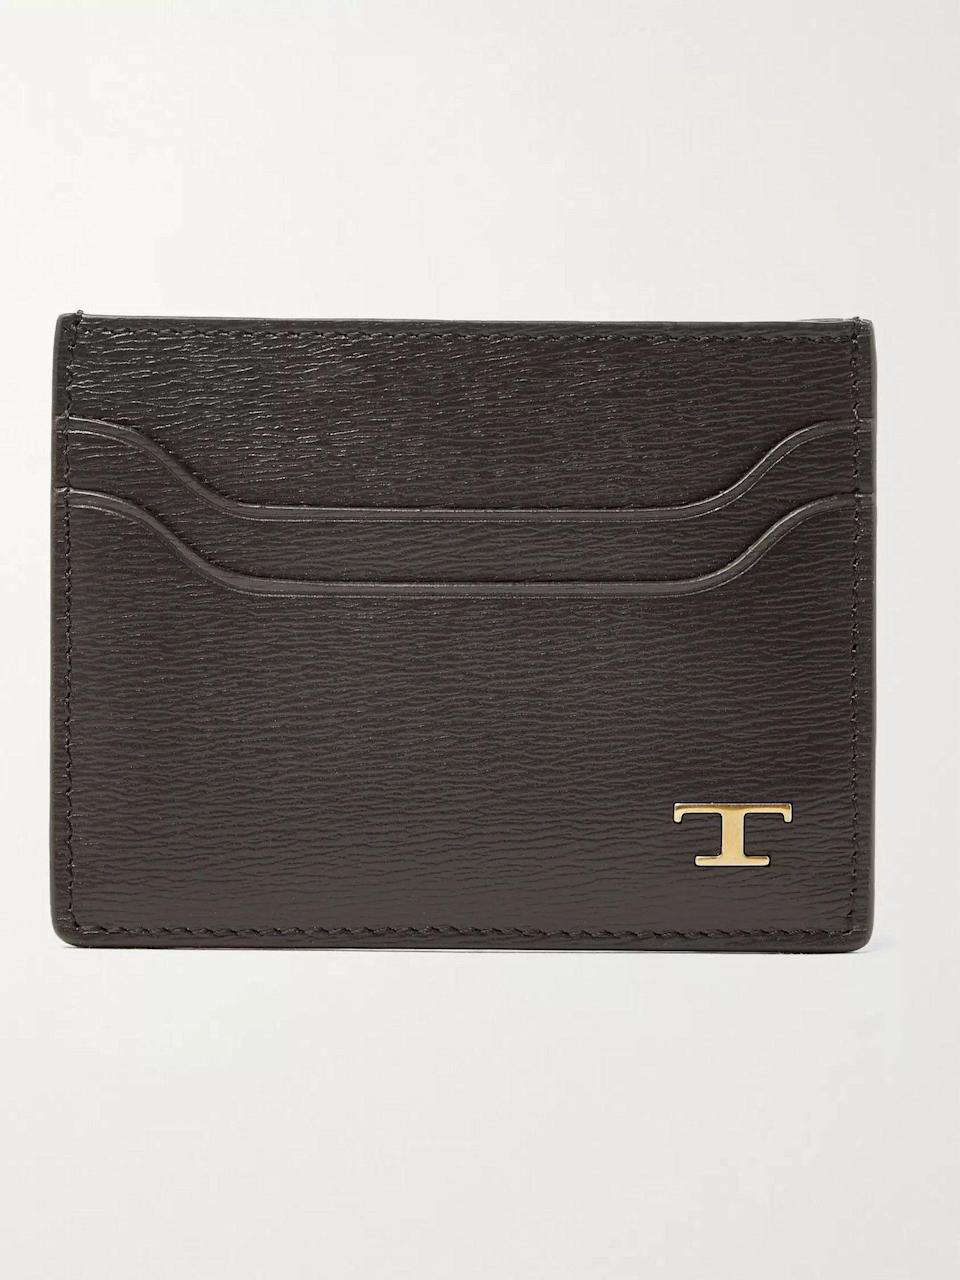 """<p><strong>Tod's</strong></p><p>mrporter.com</p><p><strong>$245.00</strong></p><p><a href=""""https://go.redirectingat.com?id=74968X1596630&url=https%3A%2F%2Fwww.mrporter.com%2Fen-us%2Fmens%2Fproduct%2Ftods%2Faccessories%2Fcardholders%2Ftextured-leather-cardholder%2F24092600056620274&sref=https%3A%2F%2Fwww.esquire.com%2Fstyle%2Fmens-accessories%2Fg35924710%2Fmens-luxury-wallets%2F"""" rel=""""nofollow noopener"""" target=""""_blank"""" data-ylk=""""slk:Shop Now"""" class=""""link rapid-noclick-resp"""">Shop Now</a></p><p>Masterful Italian minimalism, courtesy of a brand that made it a signature. </p>"""